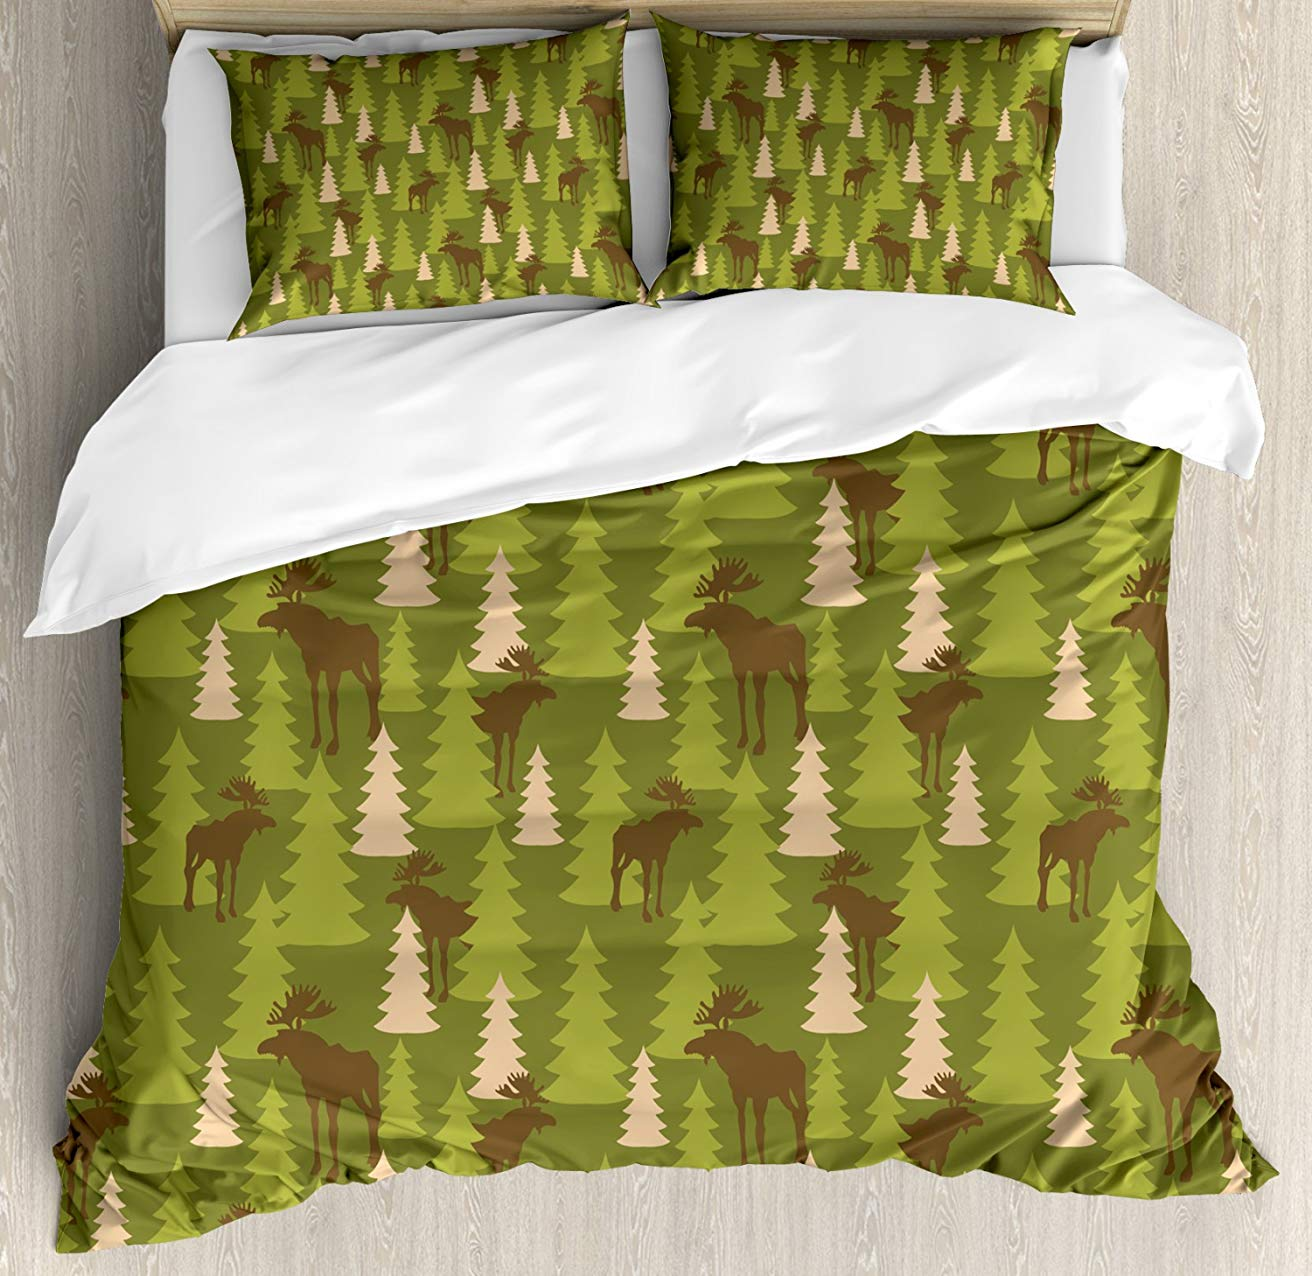 Deer Duvet Cover Set Animals in the Forrest Mooses and Pine Trees Pattern Canada Foliage Mammal Design 3 Piece Bedding SetDeer Duvet Cover Set Animals in the Forrest Mooses and Pine Trees Pattern Canada Foliage Mammal Design 3 Piece Bedding Set